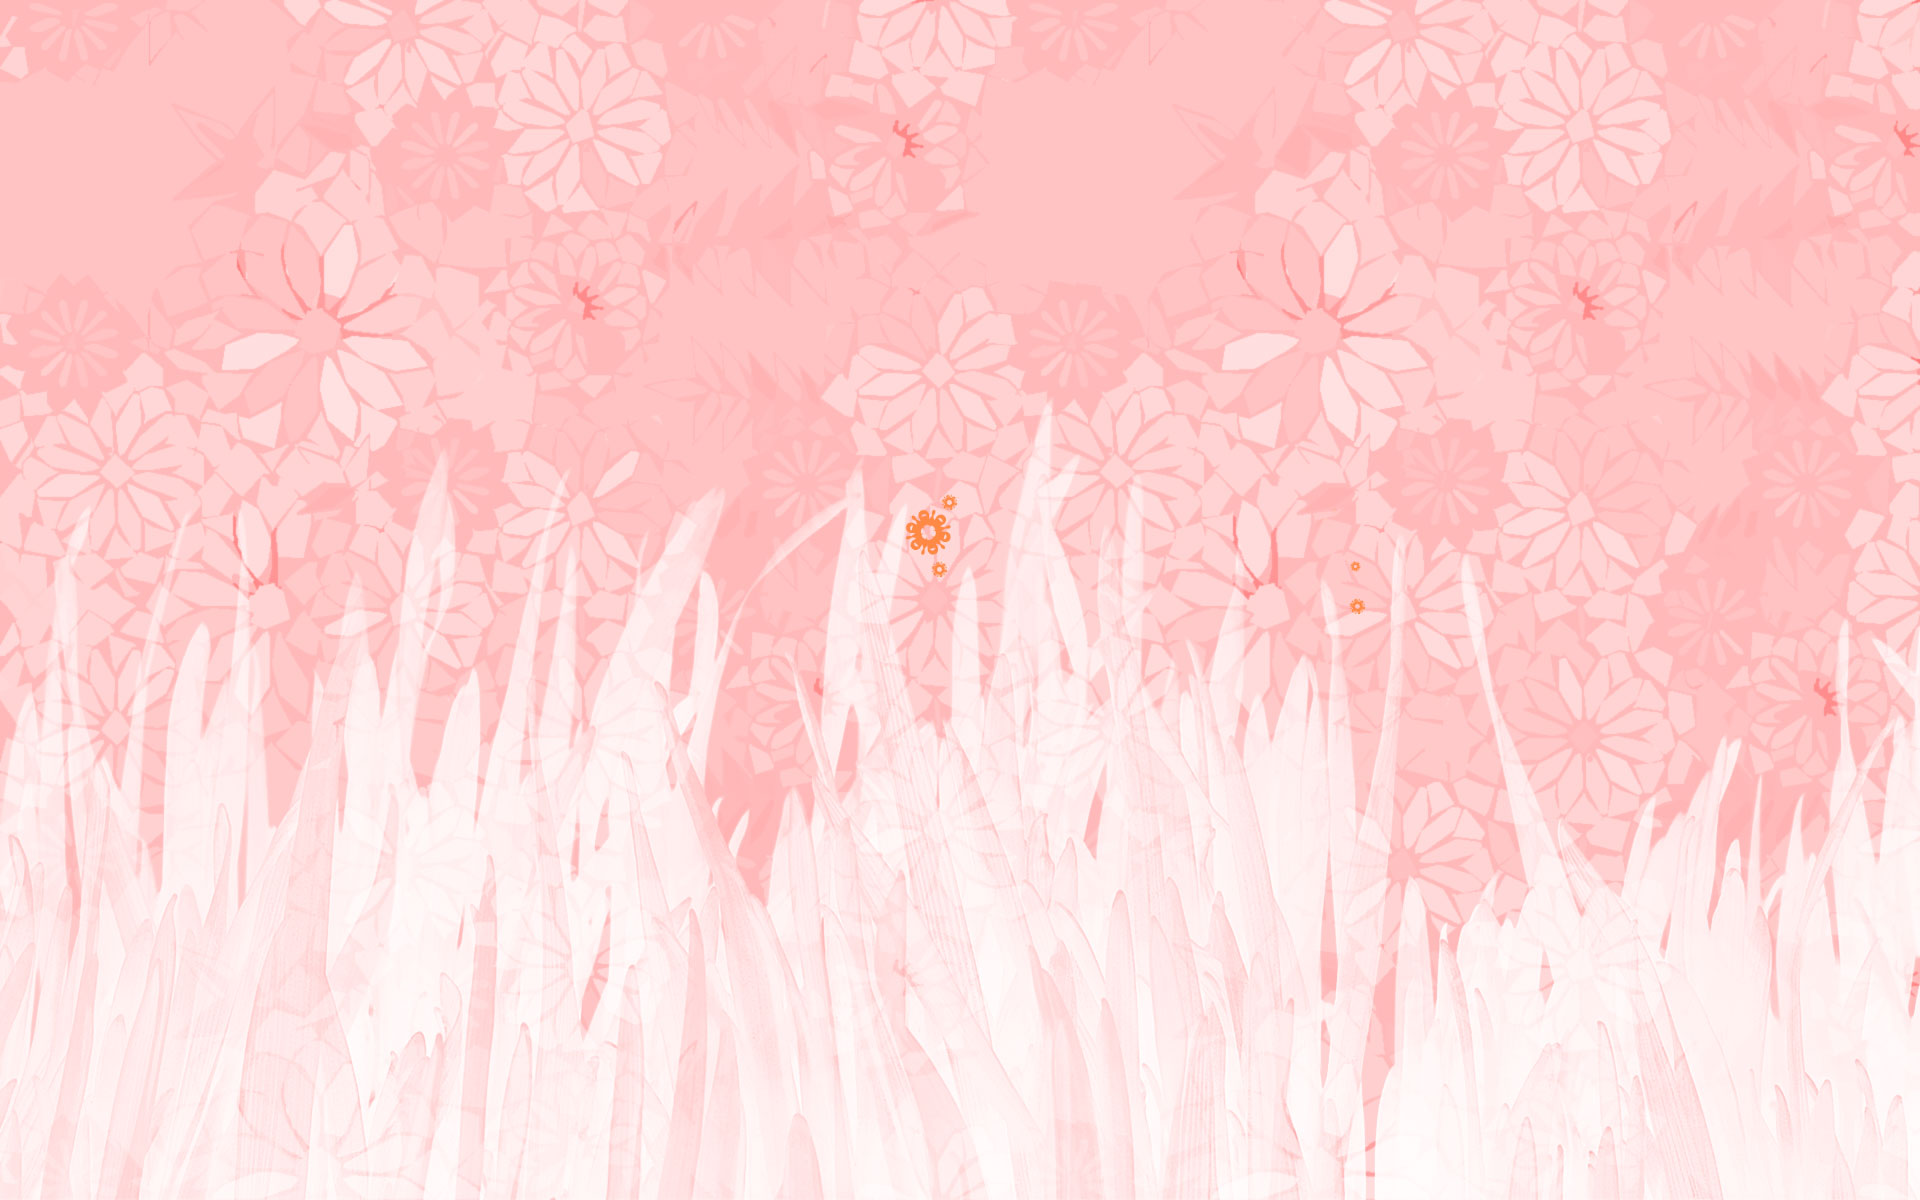 Light Pink Wallpaper 24296 1920x1200 Px Hdwallsource Com